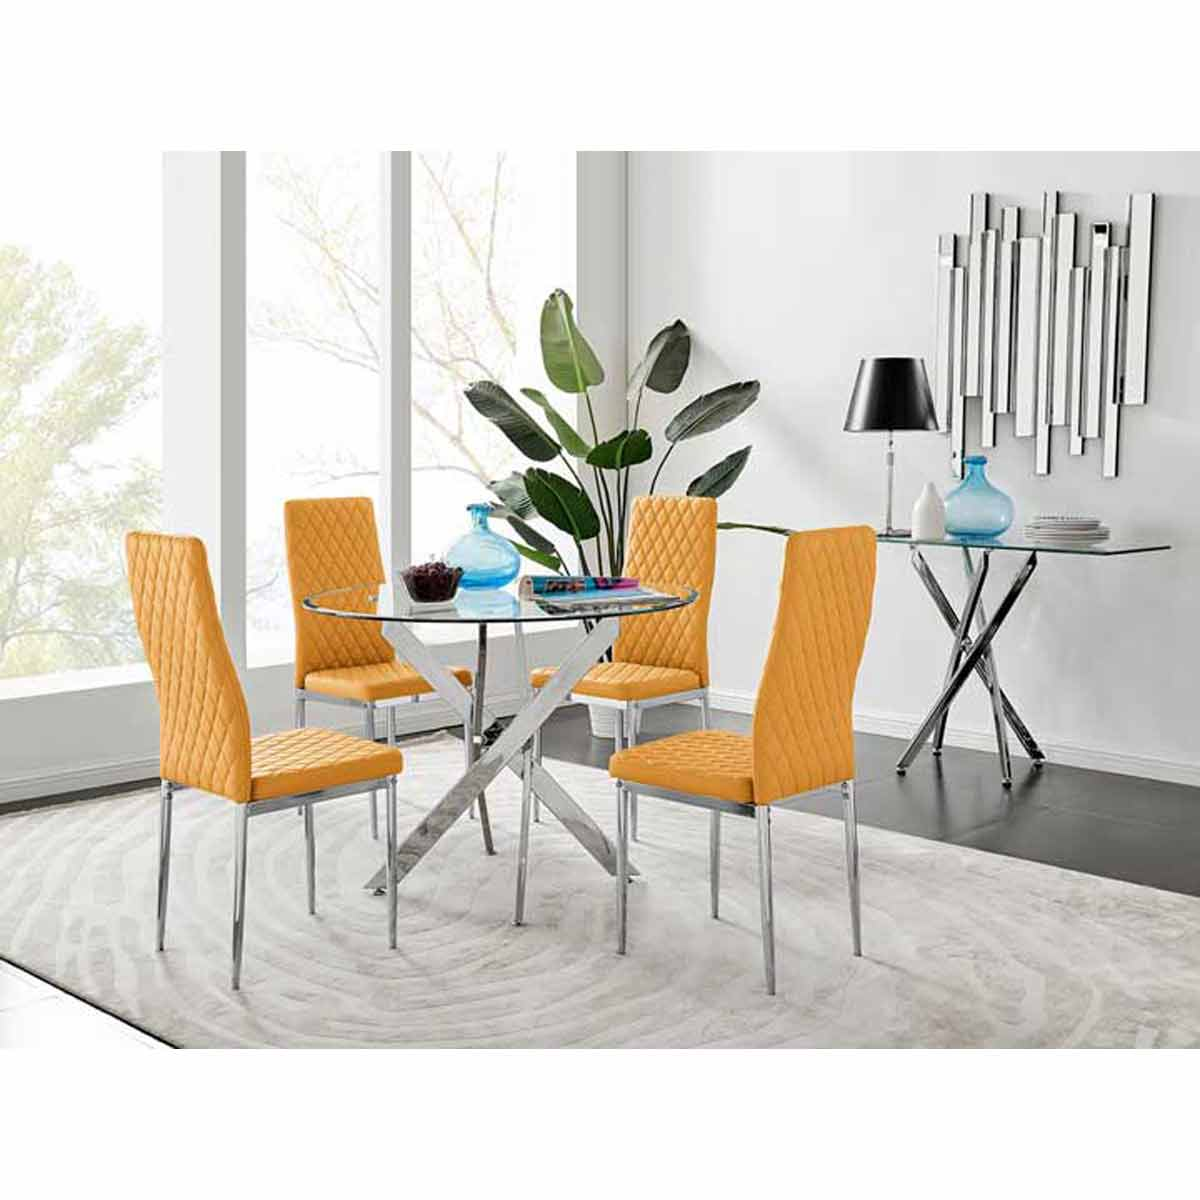 Furniture Box Novara Round Chrome Metal And Glass Dining Table And 4 Mustard Milan Dining Chairs Set